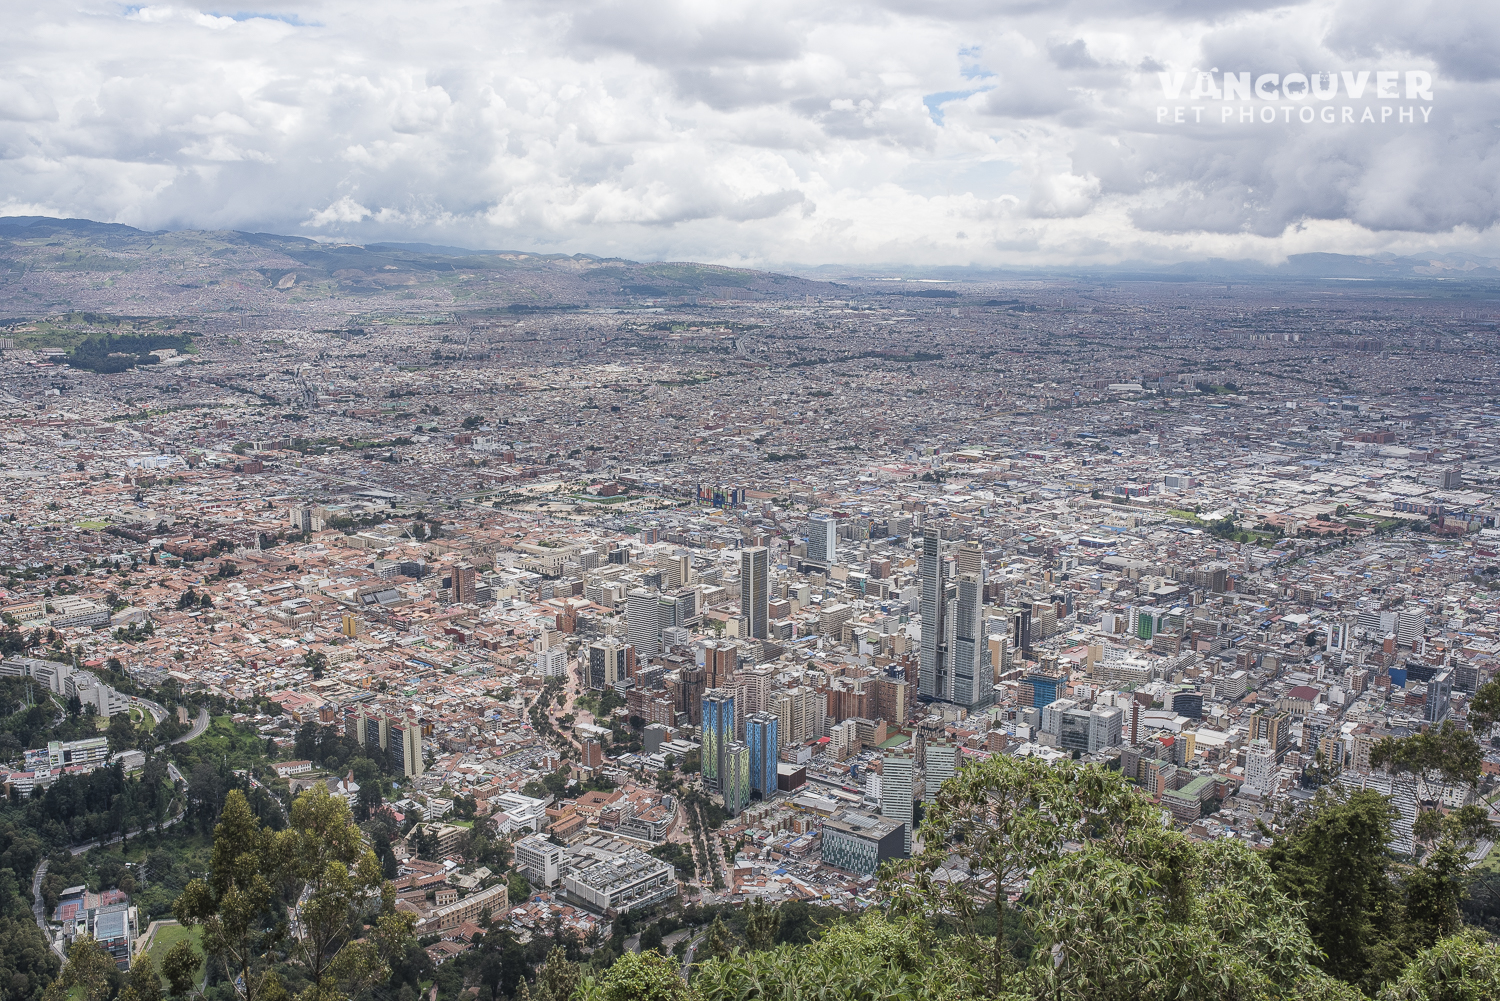 Here is an awesome view of the City from the Monserrate Mountain